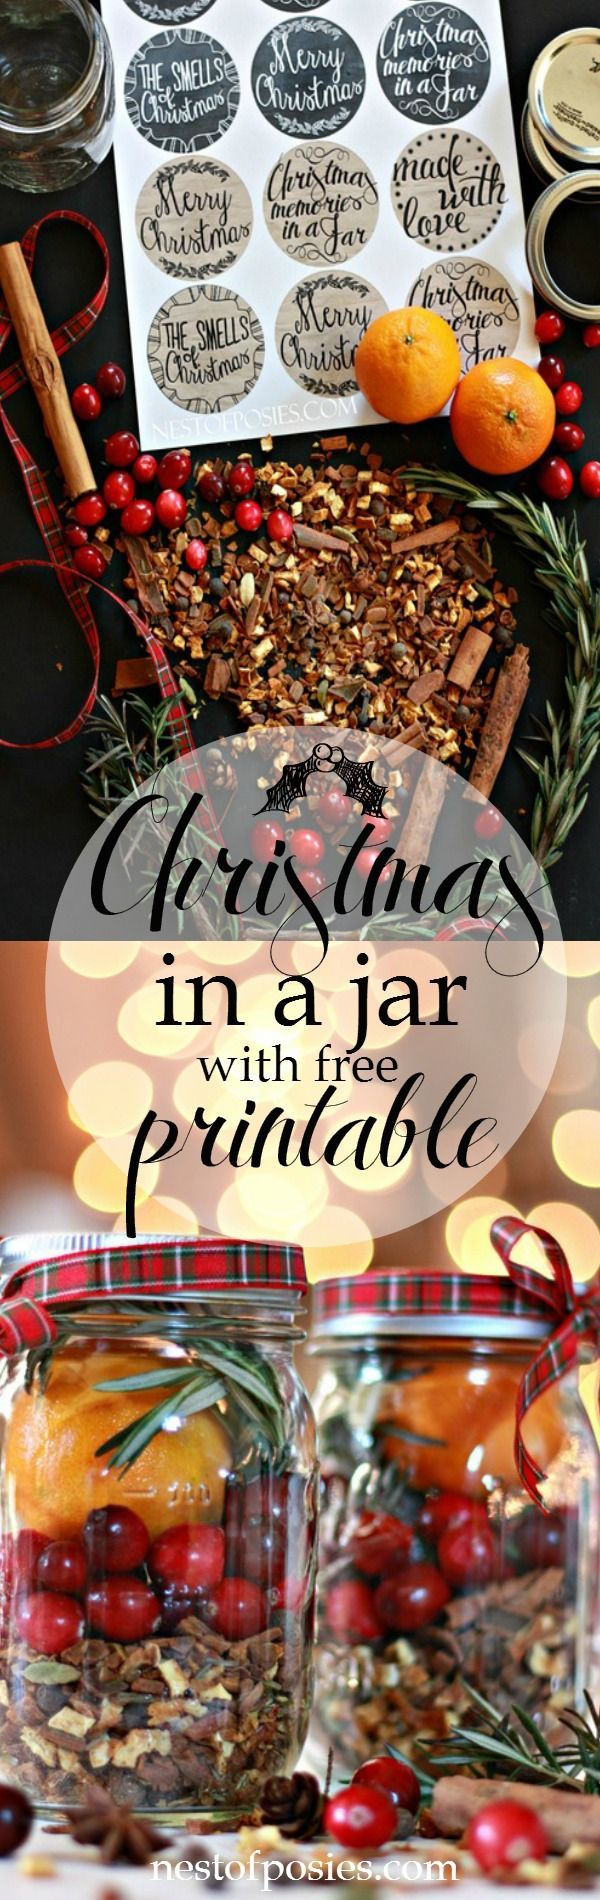 How to Make this Easy and Inexpensive Christmas Gift - Christmas in a Jar, with Printable - uses premixed spice mixture from World Market, a jar, some fruit and ribbon. This is a perfect gift to have on hand for last minute visitors - via Nest of Posies